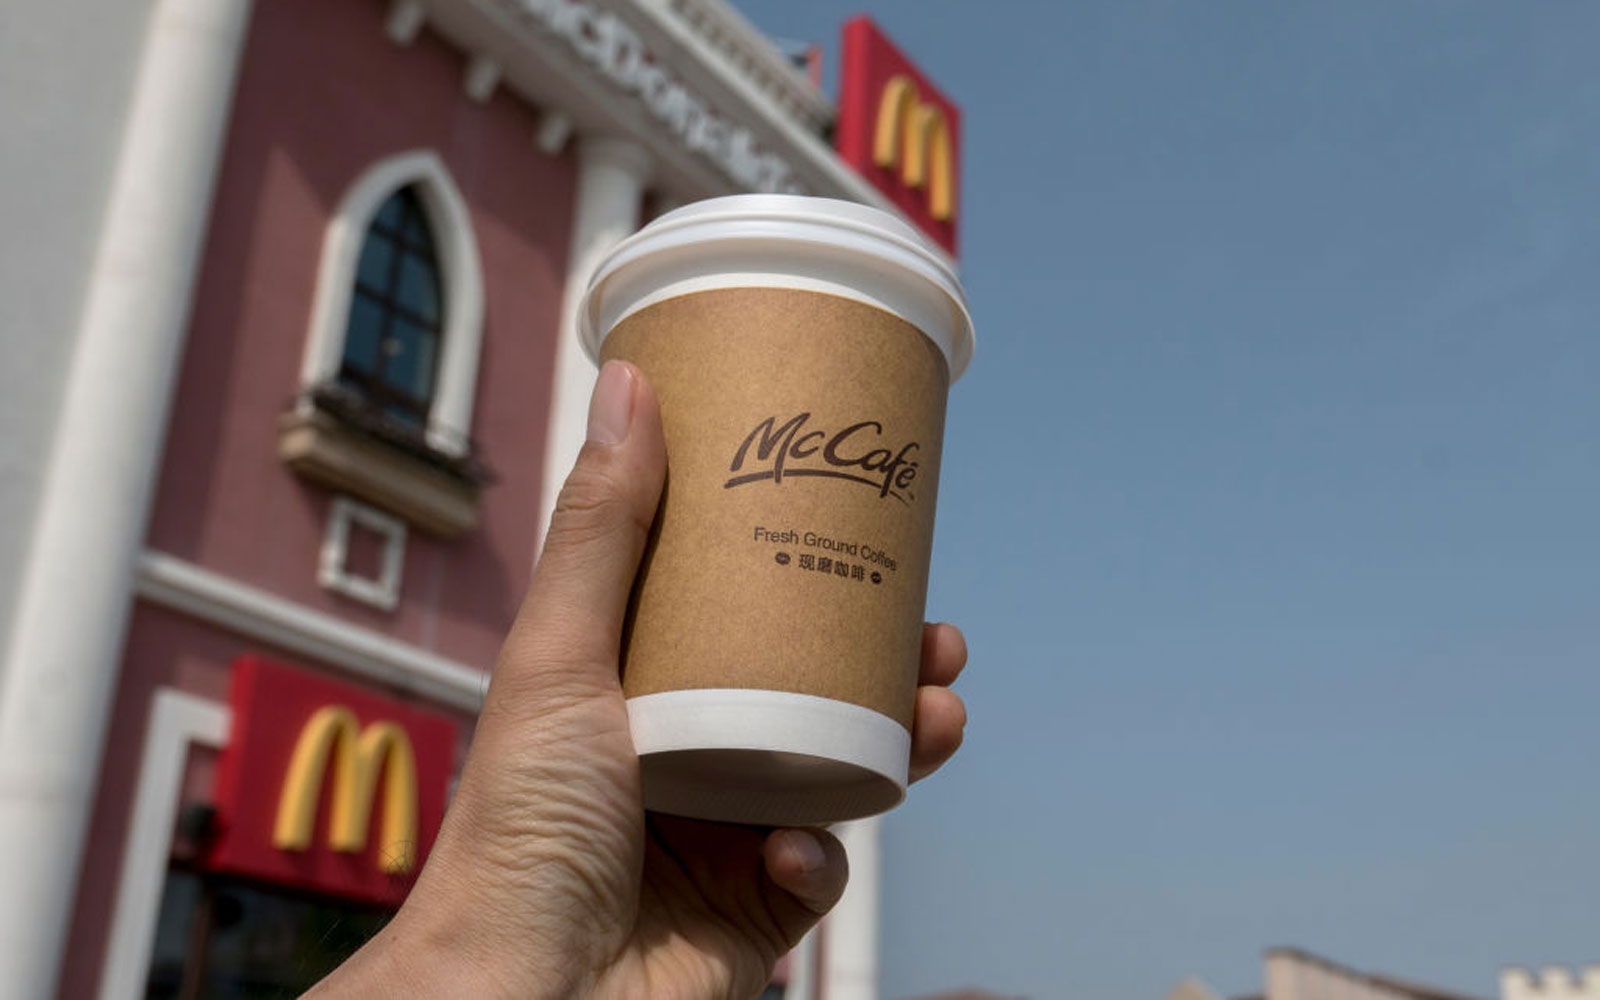 A cup of McDonald's coffee